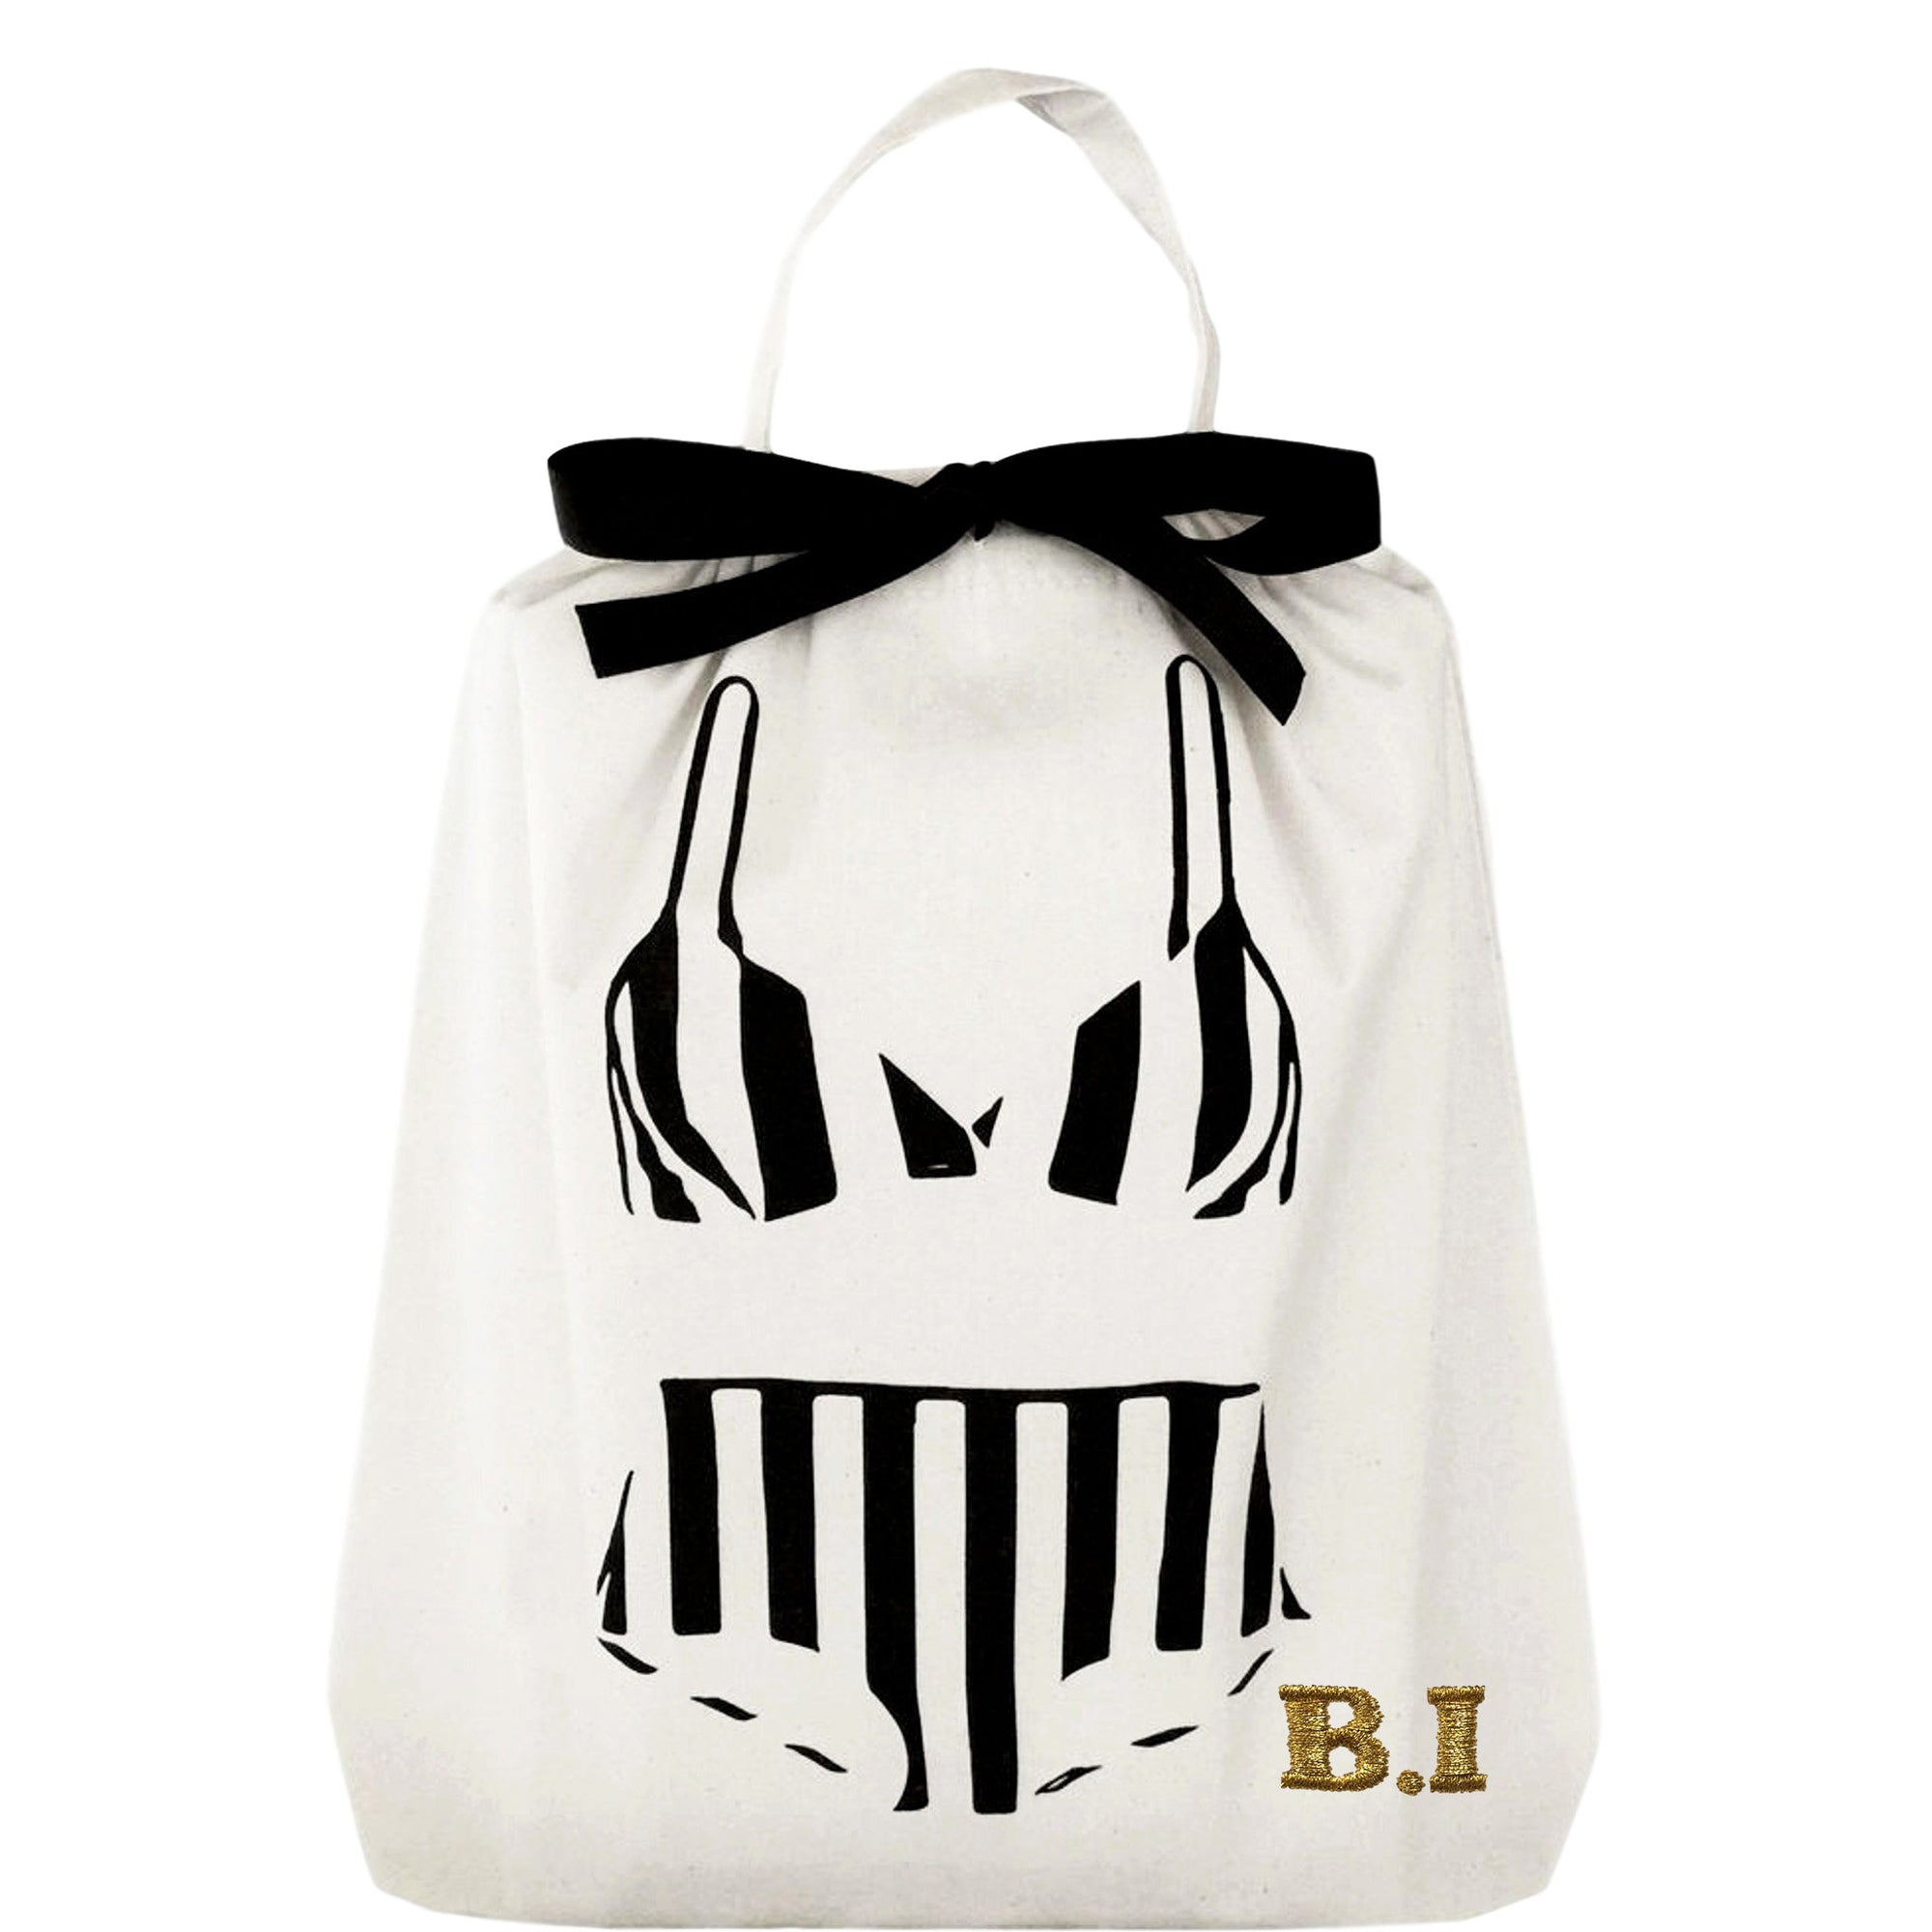 A bikini bag with a striped bikini printed on the front.